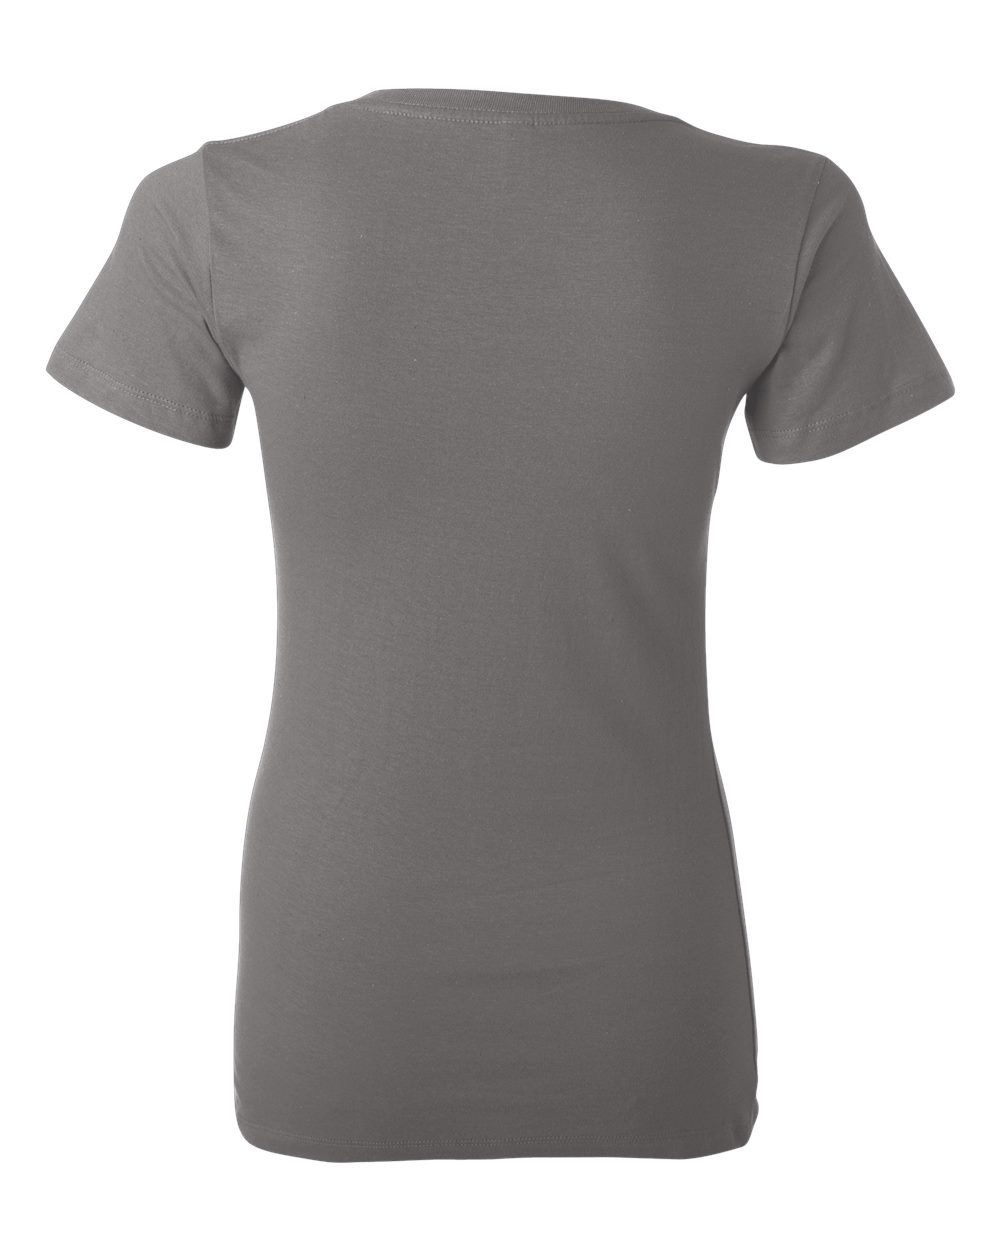 Bella-Canvas-Women-039-s-Jersey-Short-Sleeve-Deep-V-Neck-T-Shirt-B6035-S-2XL thumbnail 79